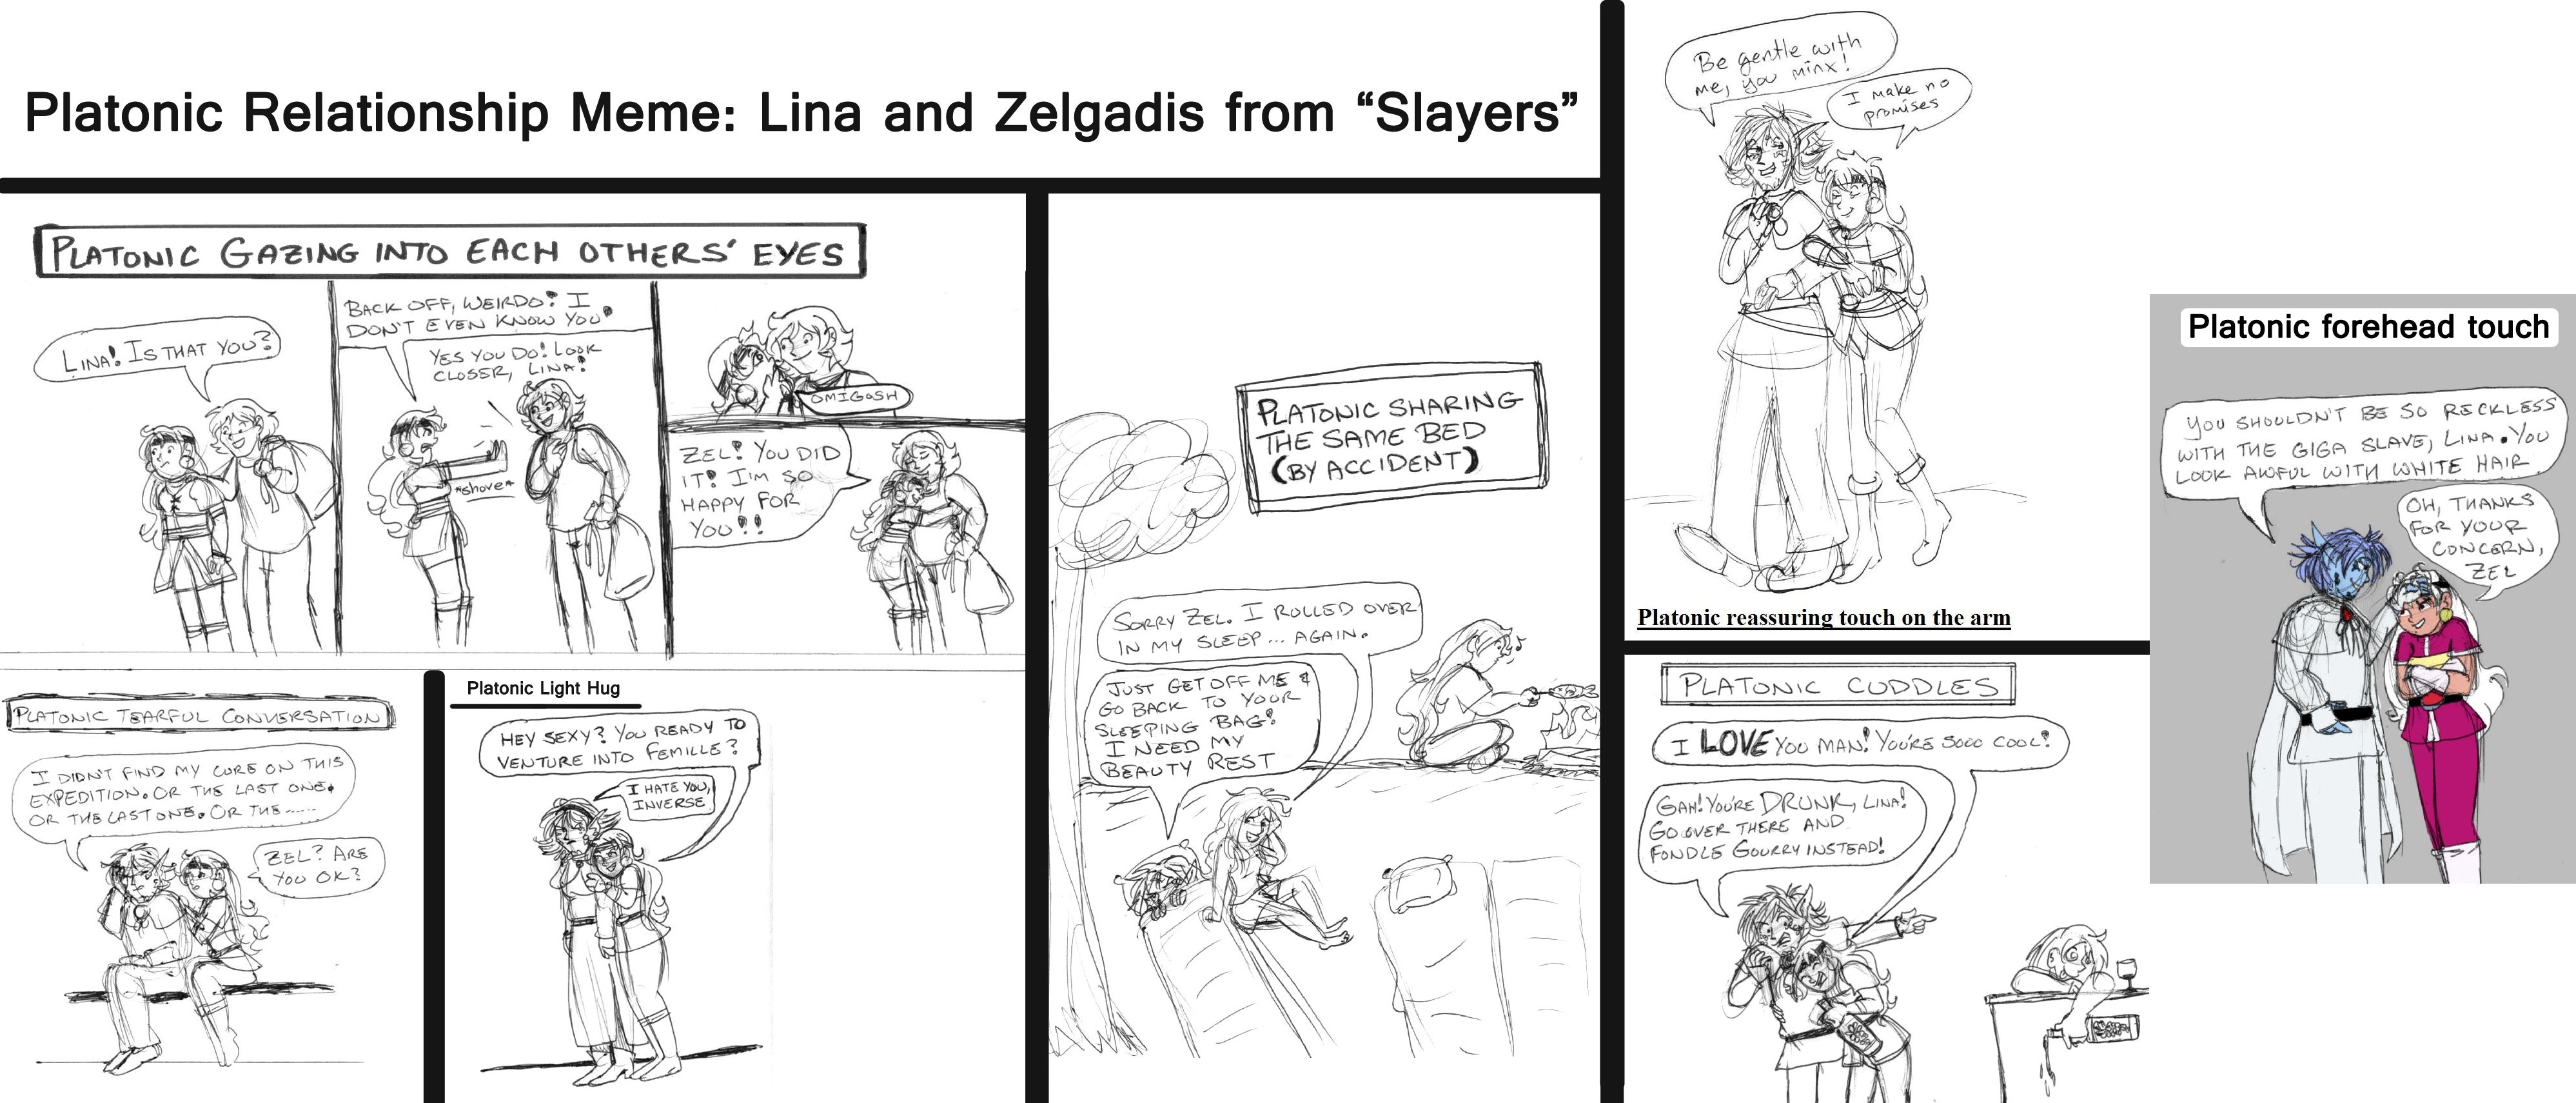 Platonic Relationship Meme: Lina and Zelgadis by brensey